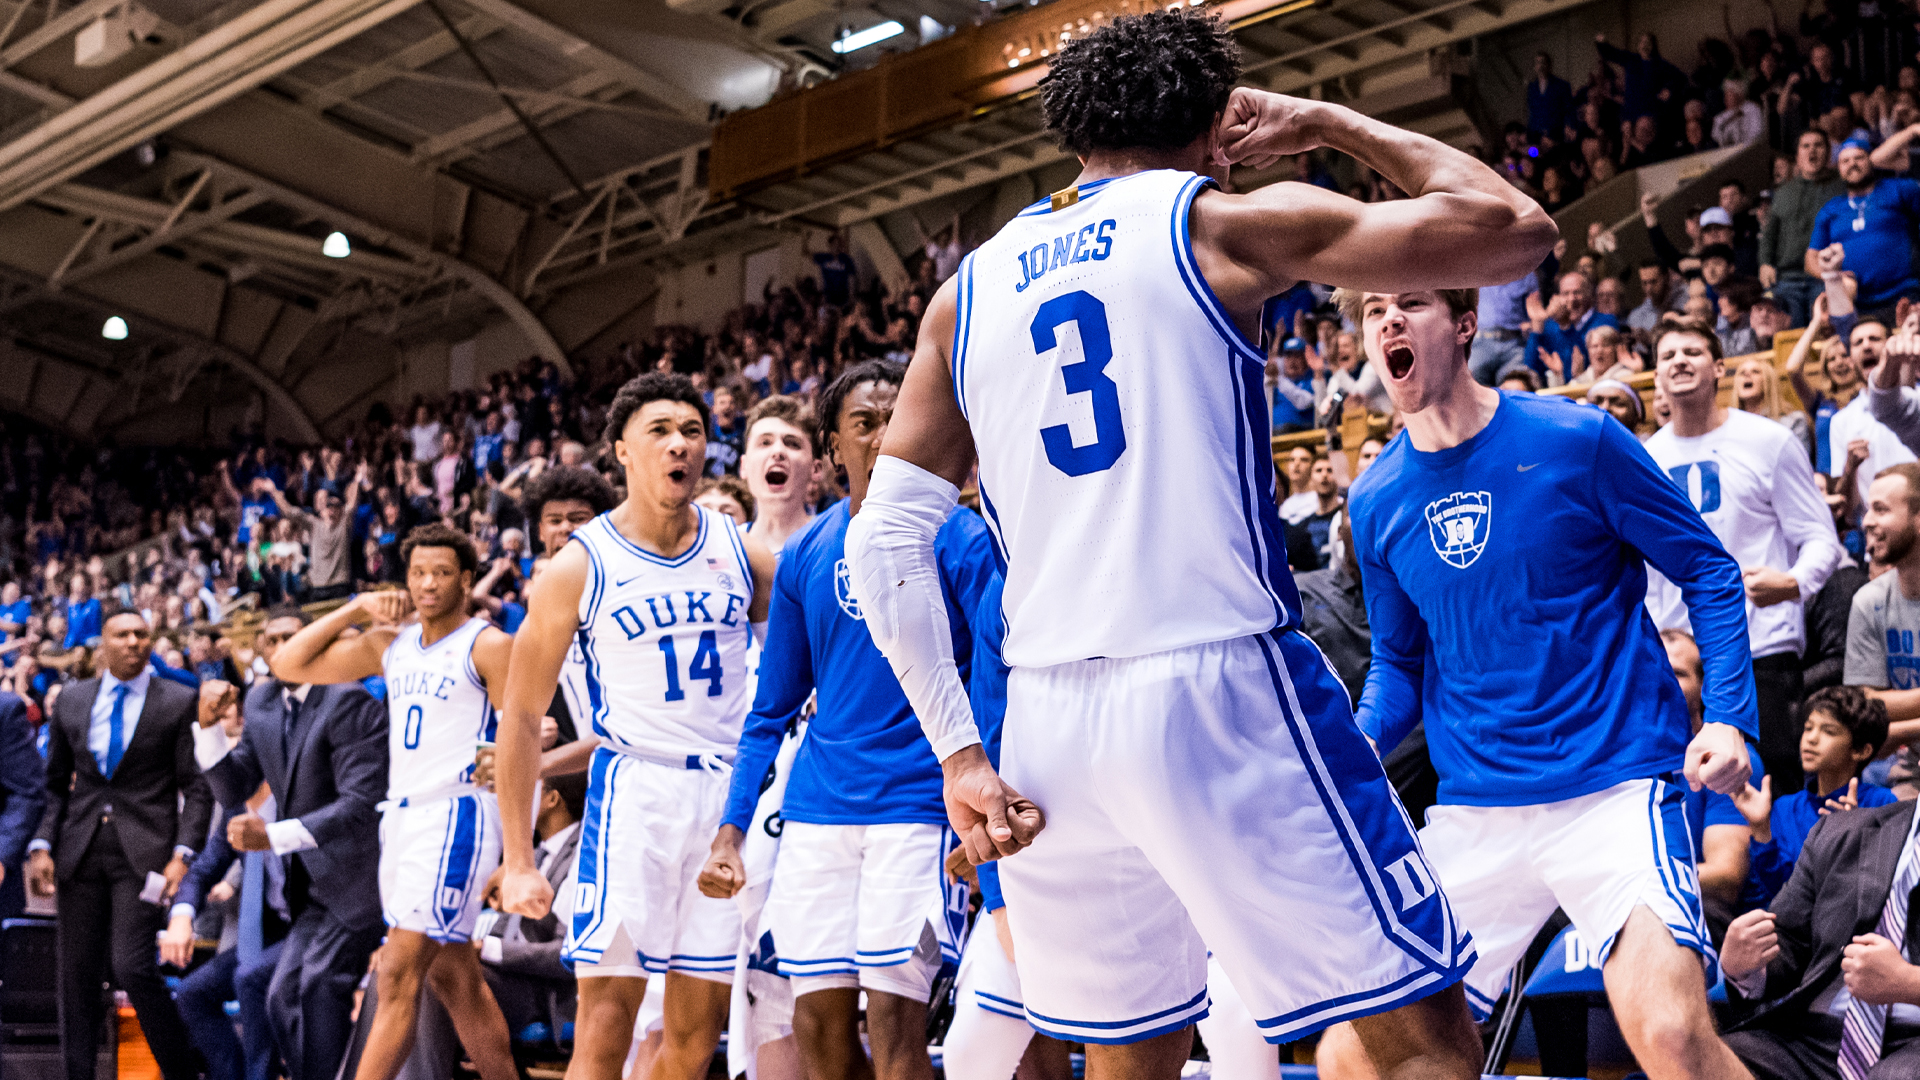 Image result for duke basketball pictures 2019-20